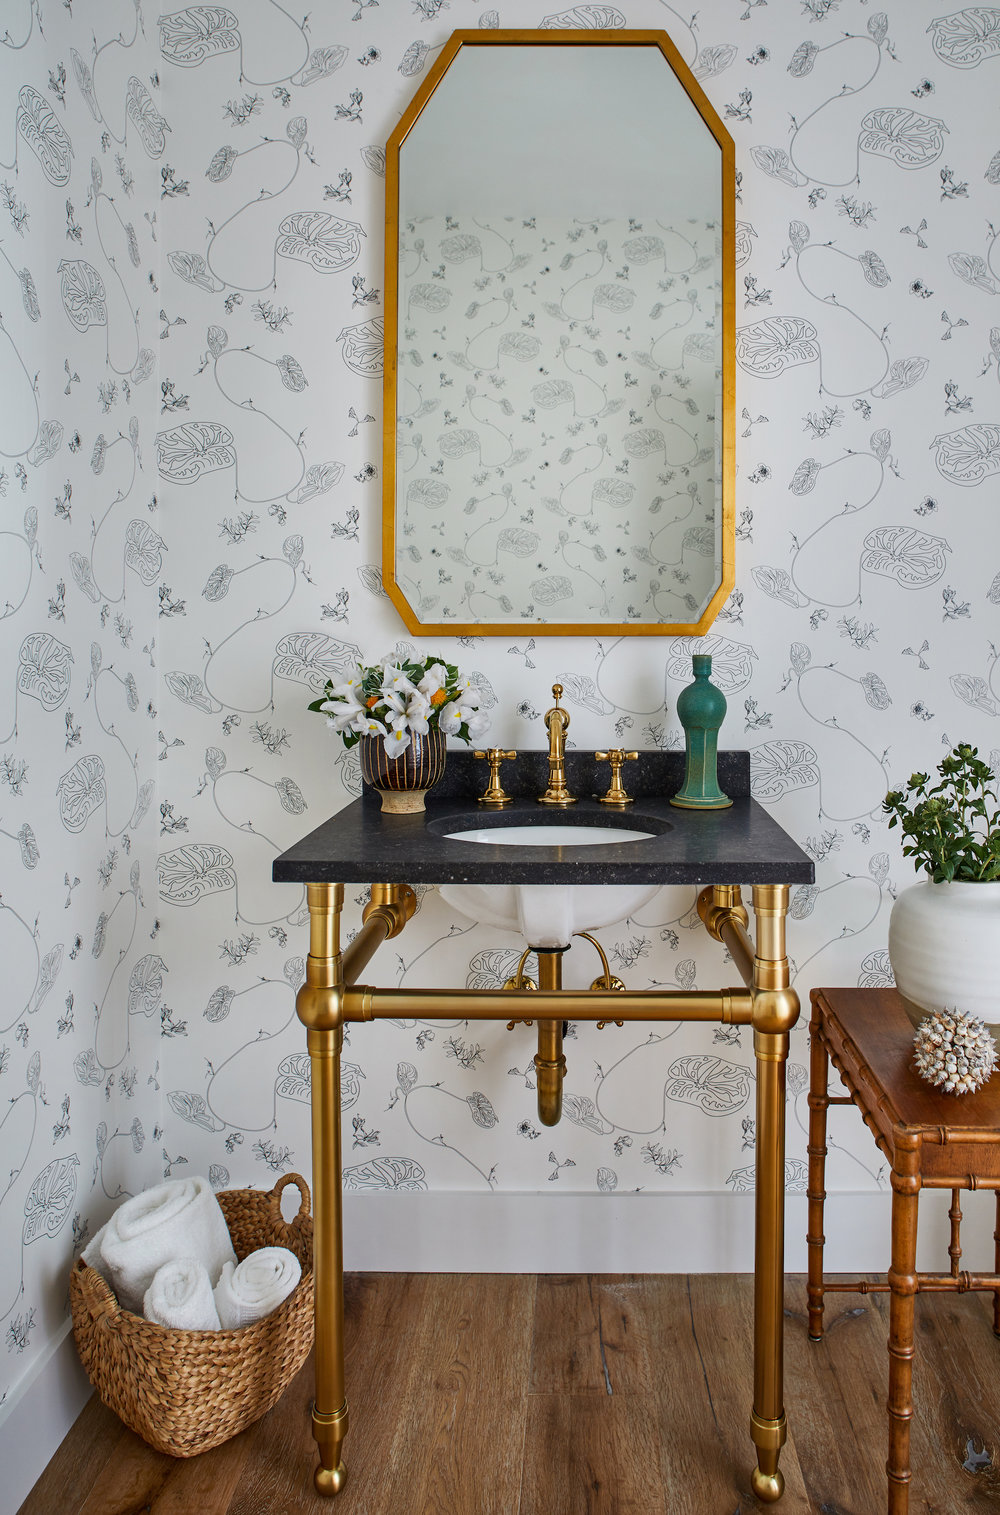 8 Trends Interior Designers Are Ditching Come February - by MEGAN BEAUCHAMP